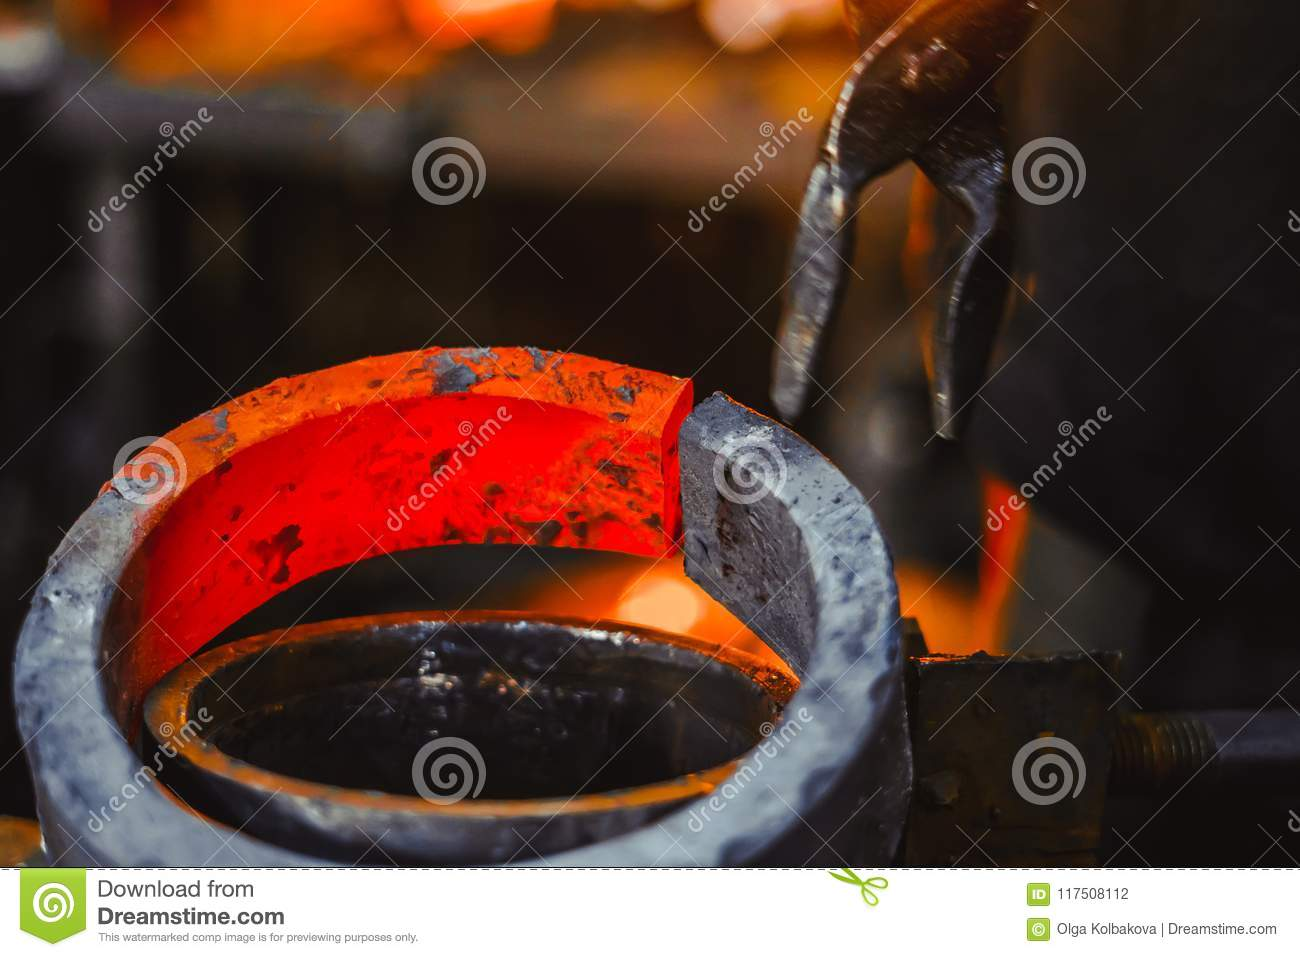 Industrial Forging Hot Item At The Forge Stock Photo Image Of Forged Industrial